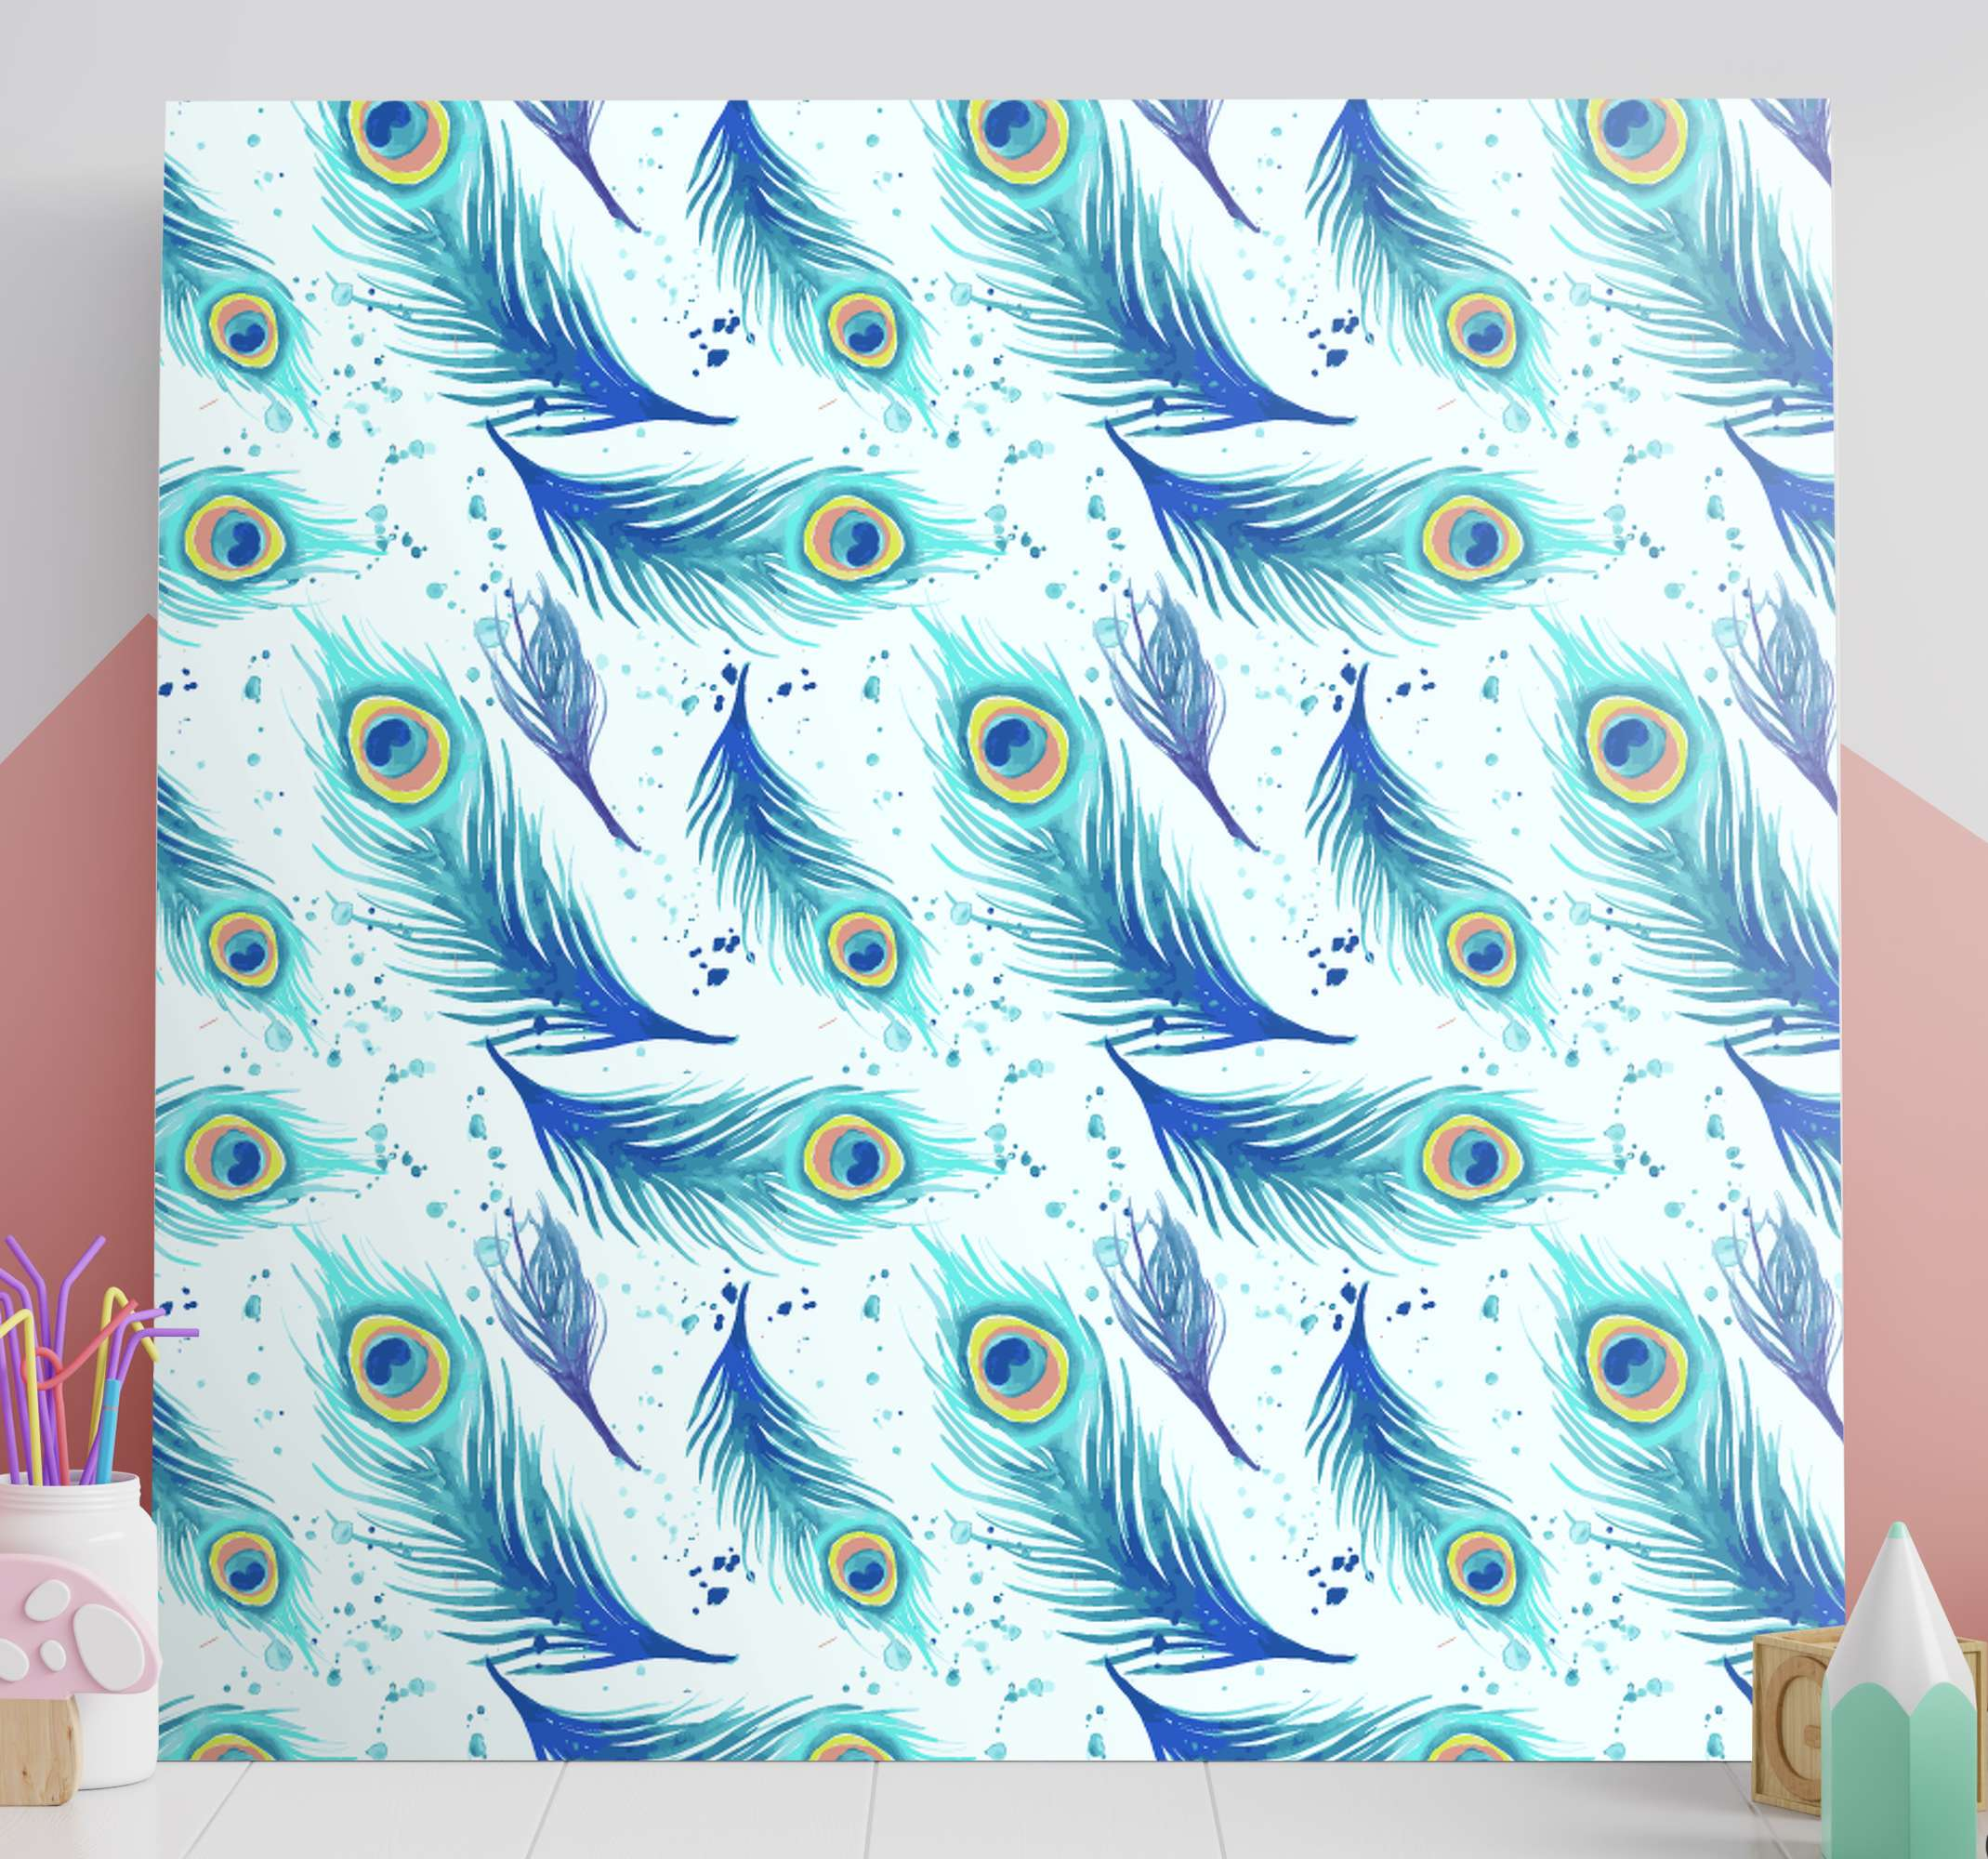 TenStickers. Blue Peacock Feather canvas. Canvas print with peacock feathers. The patternshows many peacock feathers on a white background. Made of high quality vinyl.